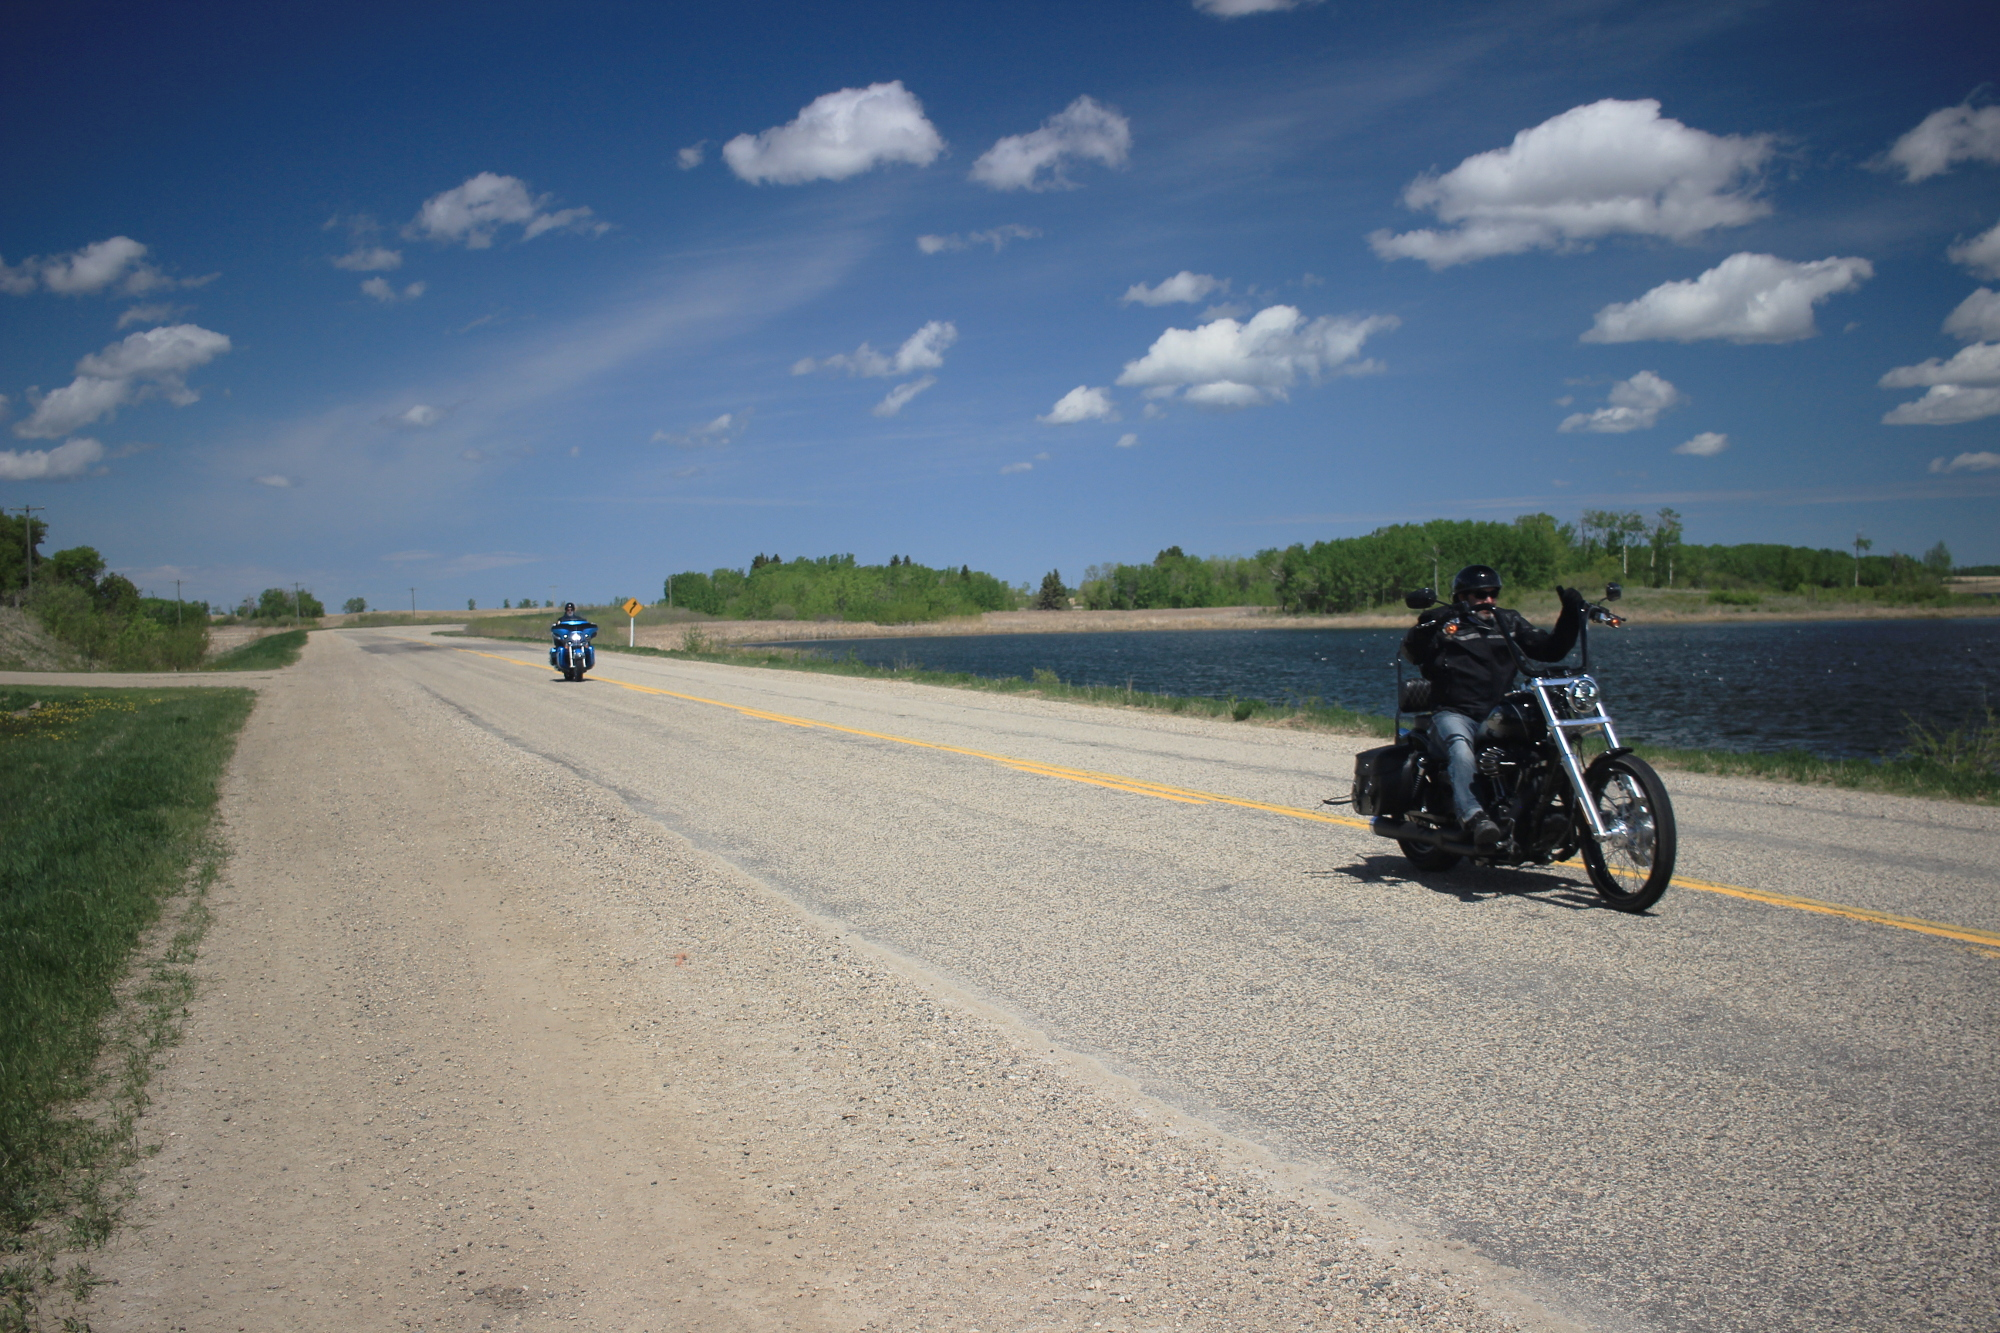 Bikers on the road between Sandy Lake and Rapid City